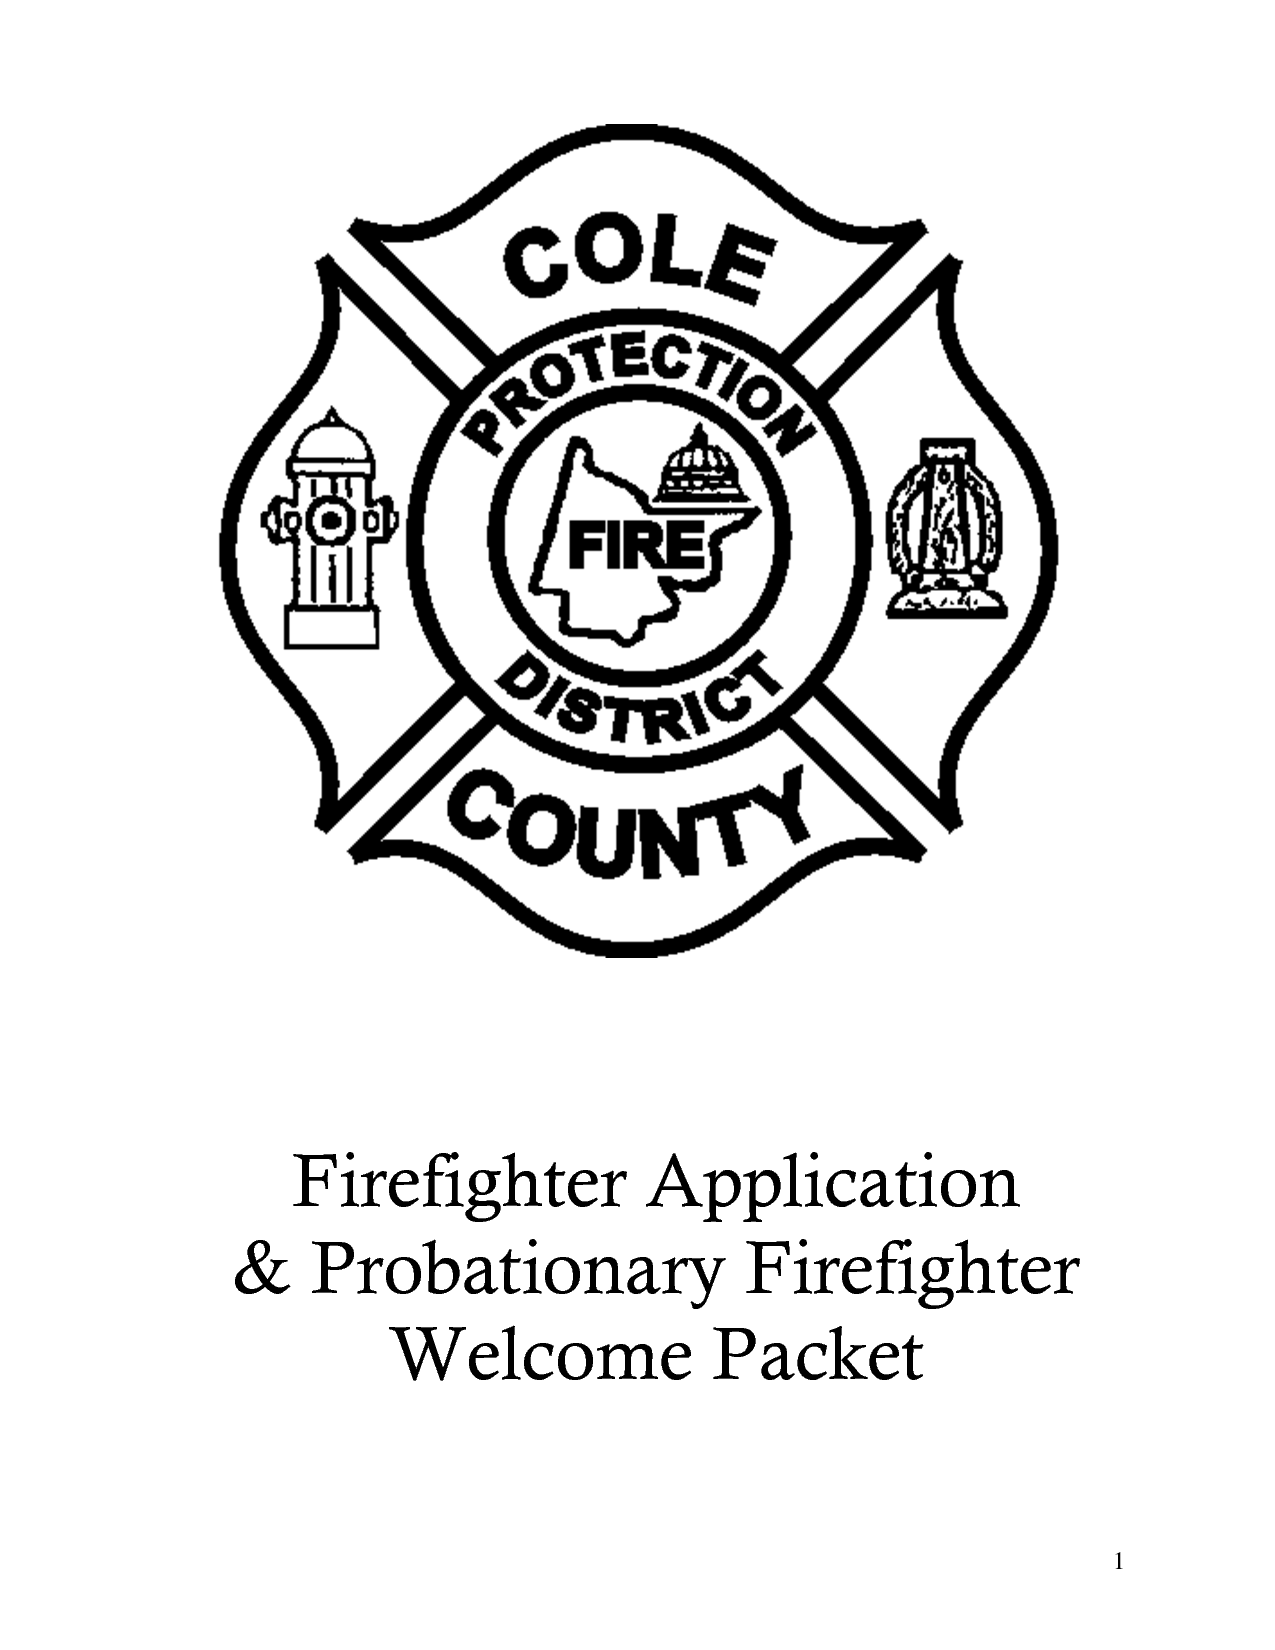 8 pics of firefighter badges coloring pages printable coloring - Firefighter Badges Coloring Pages